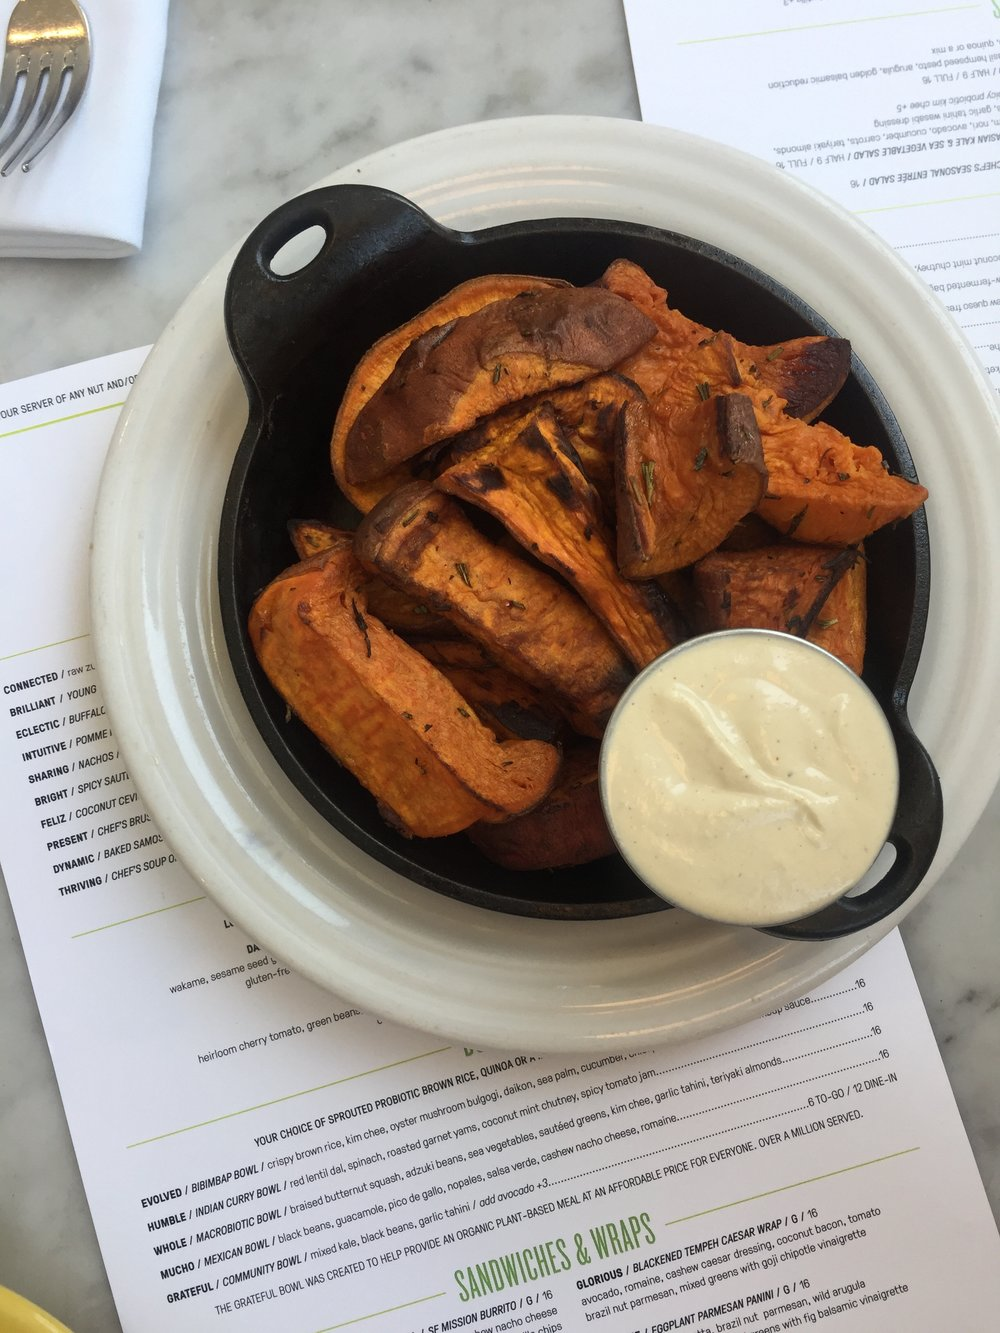 roasted sweet potato wedges + cashew cream sauce from Cafe Gratitude